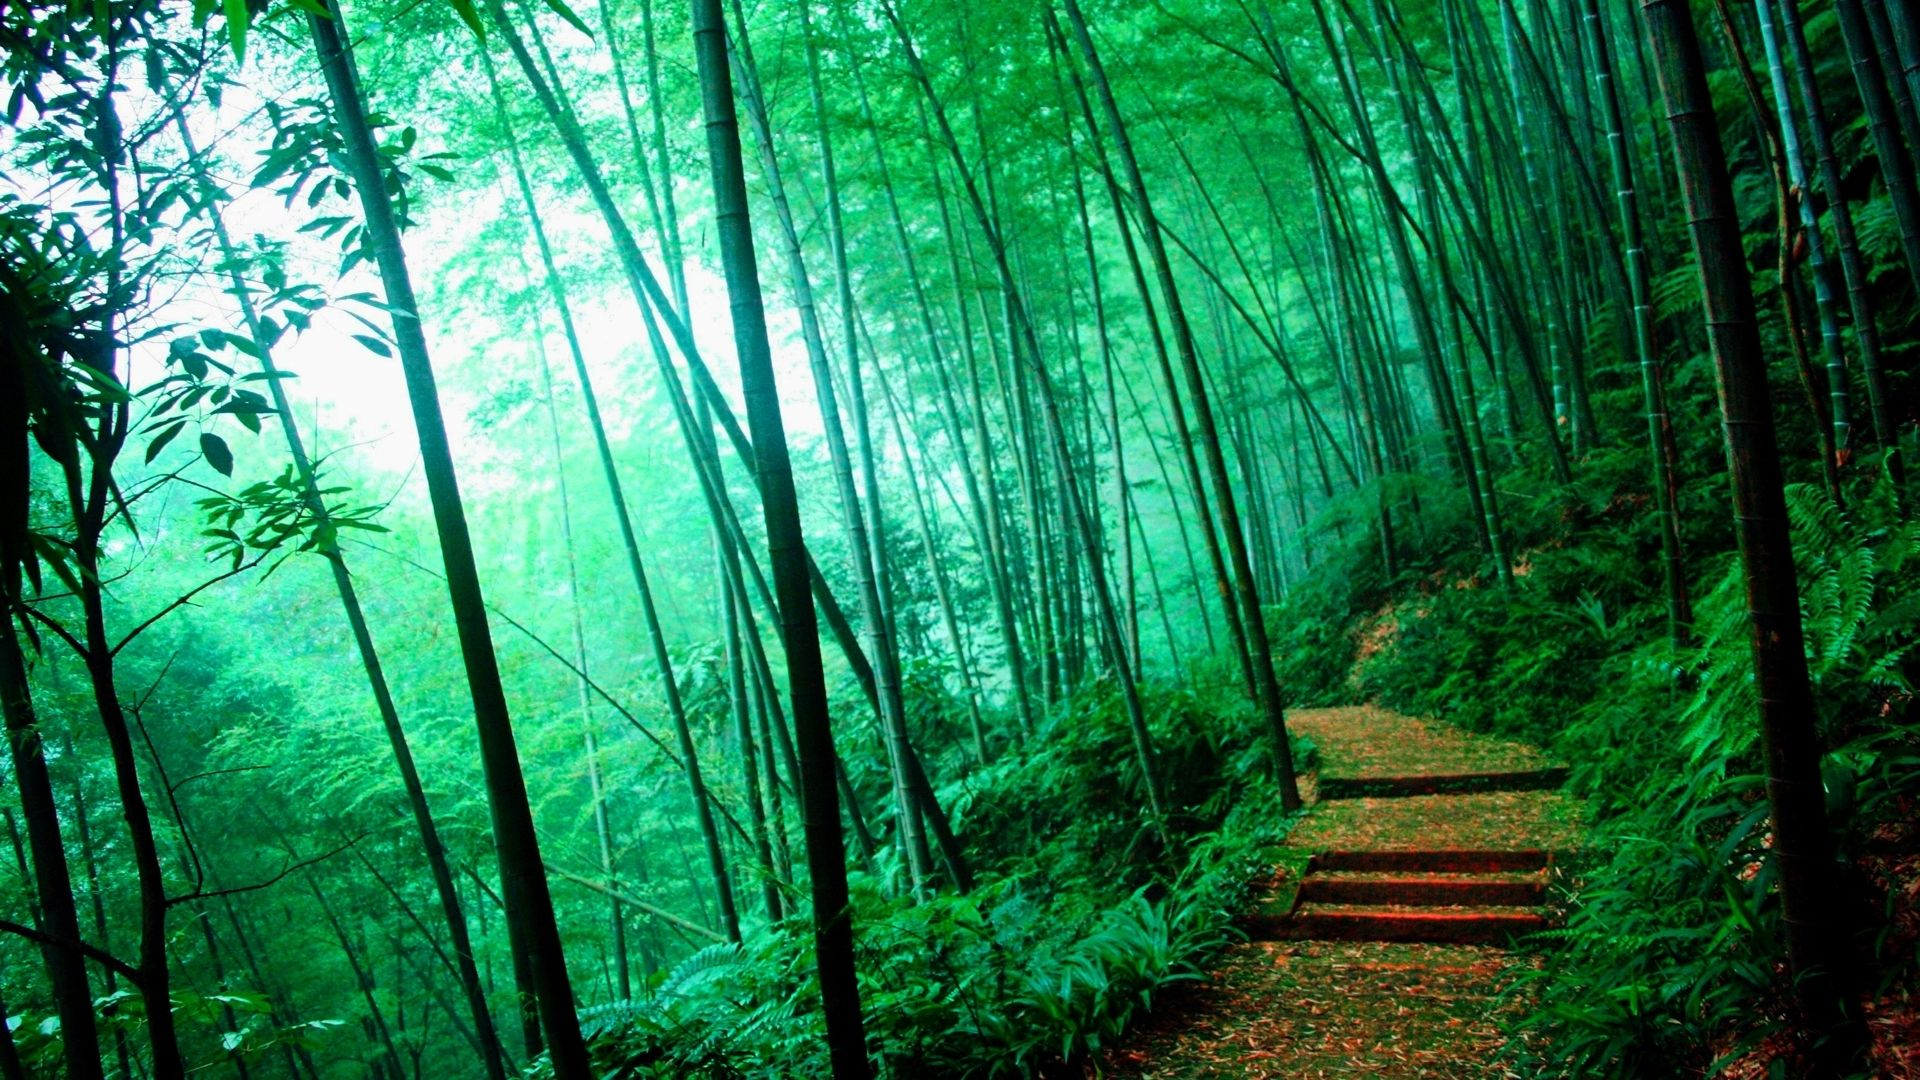 Bamboo Forest Hd Wallpaper Ische